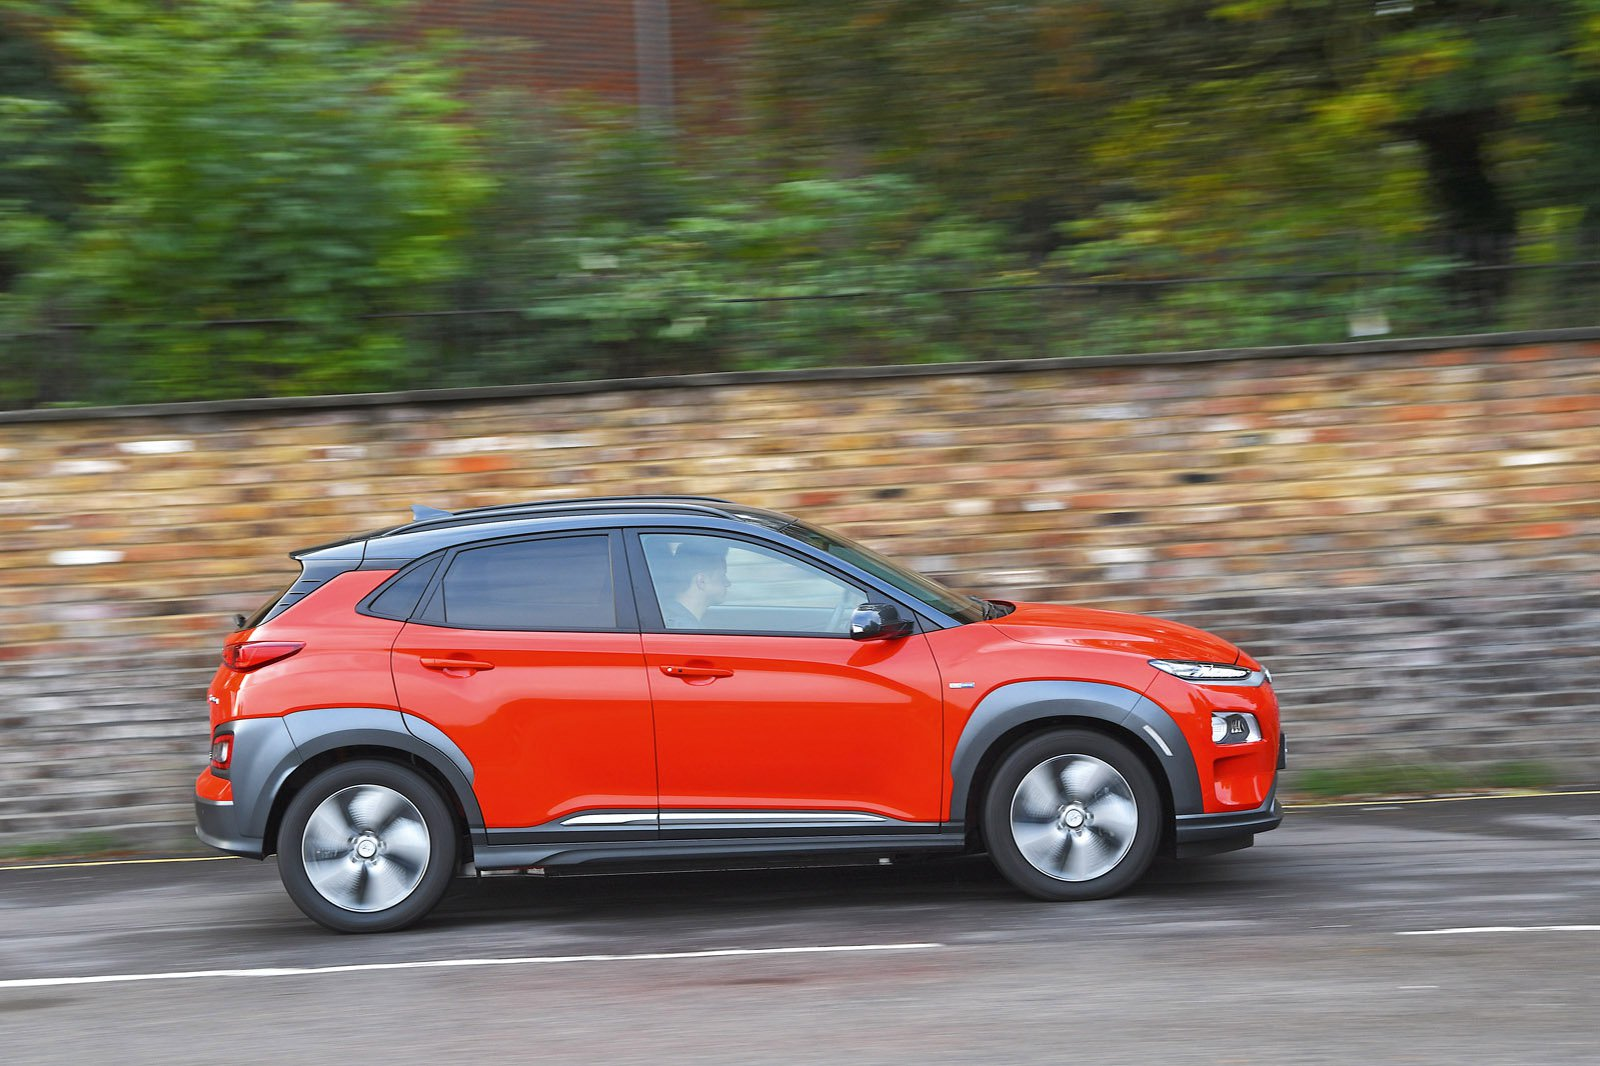 Hyundai Kona Electric driving